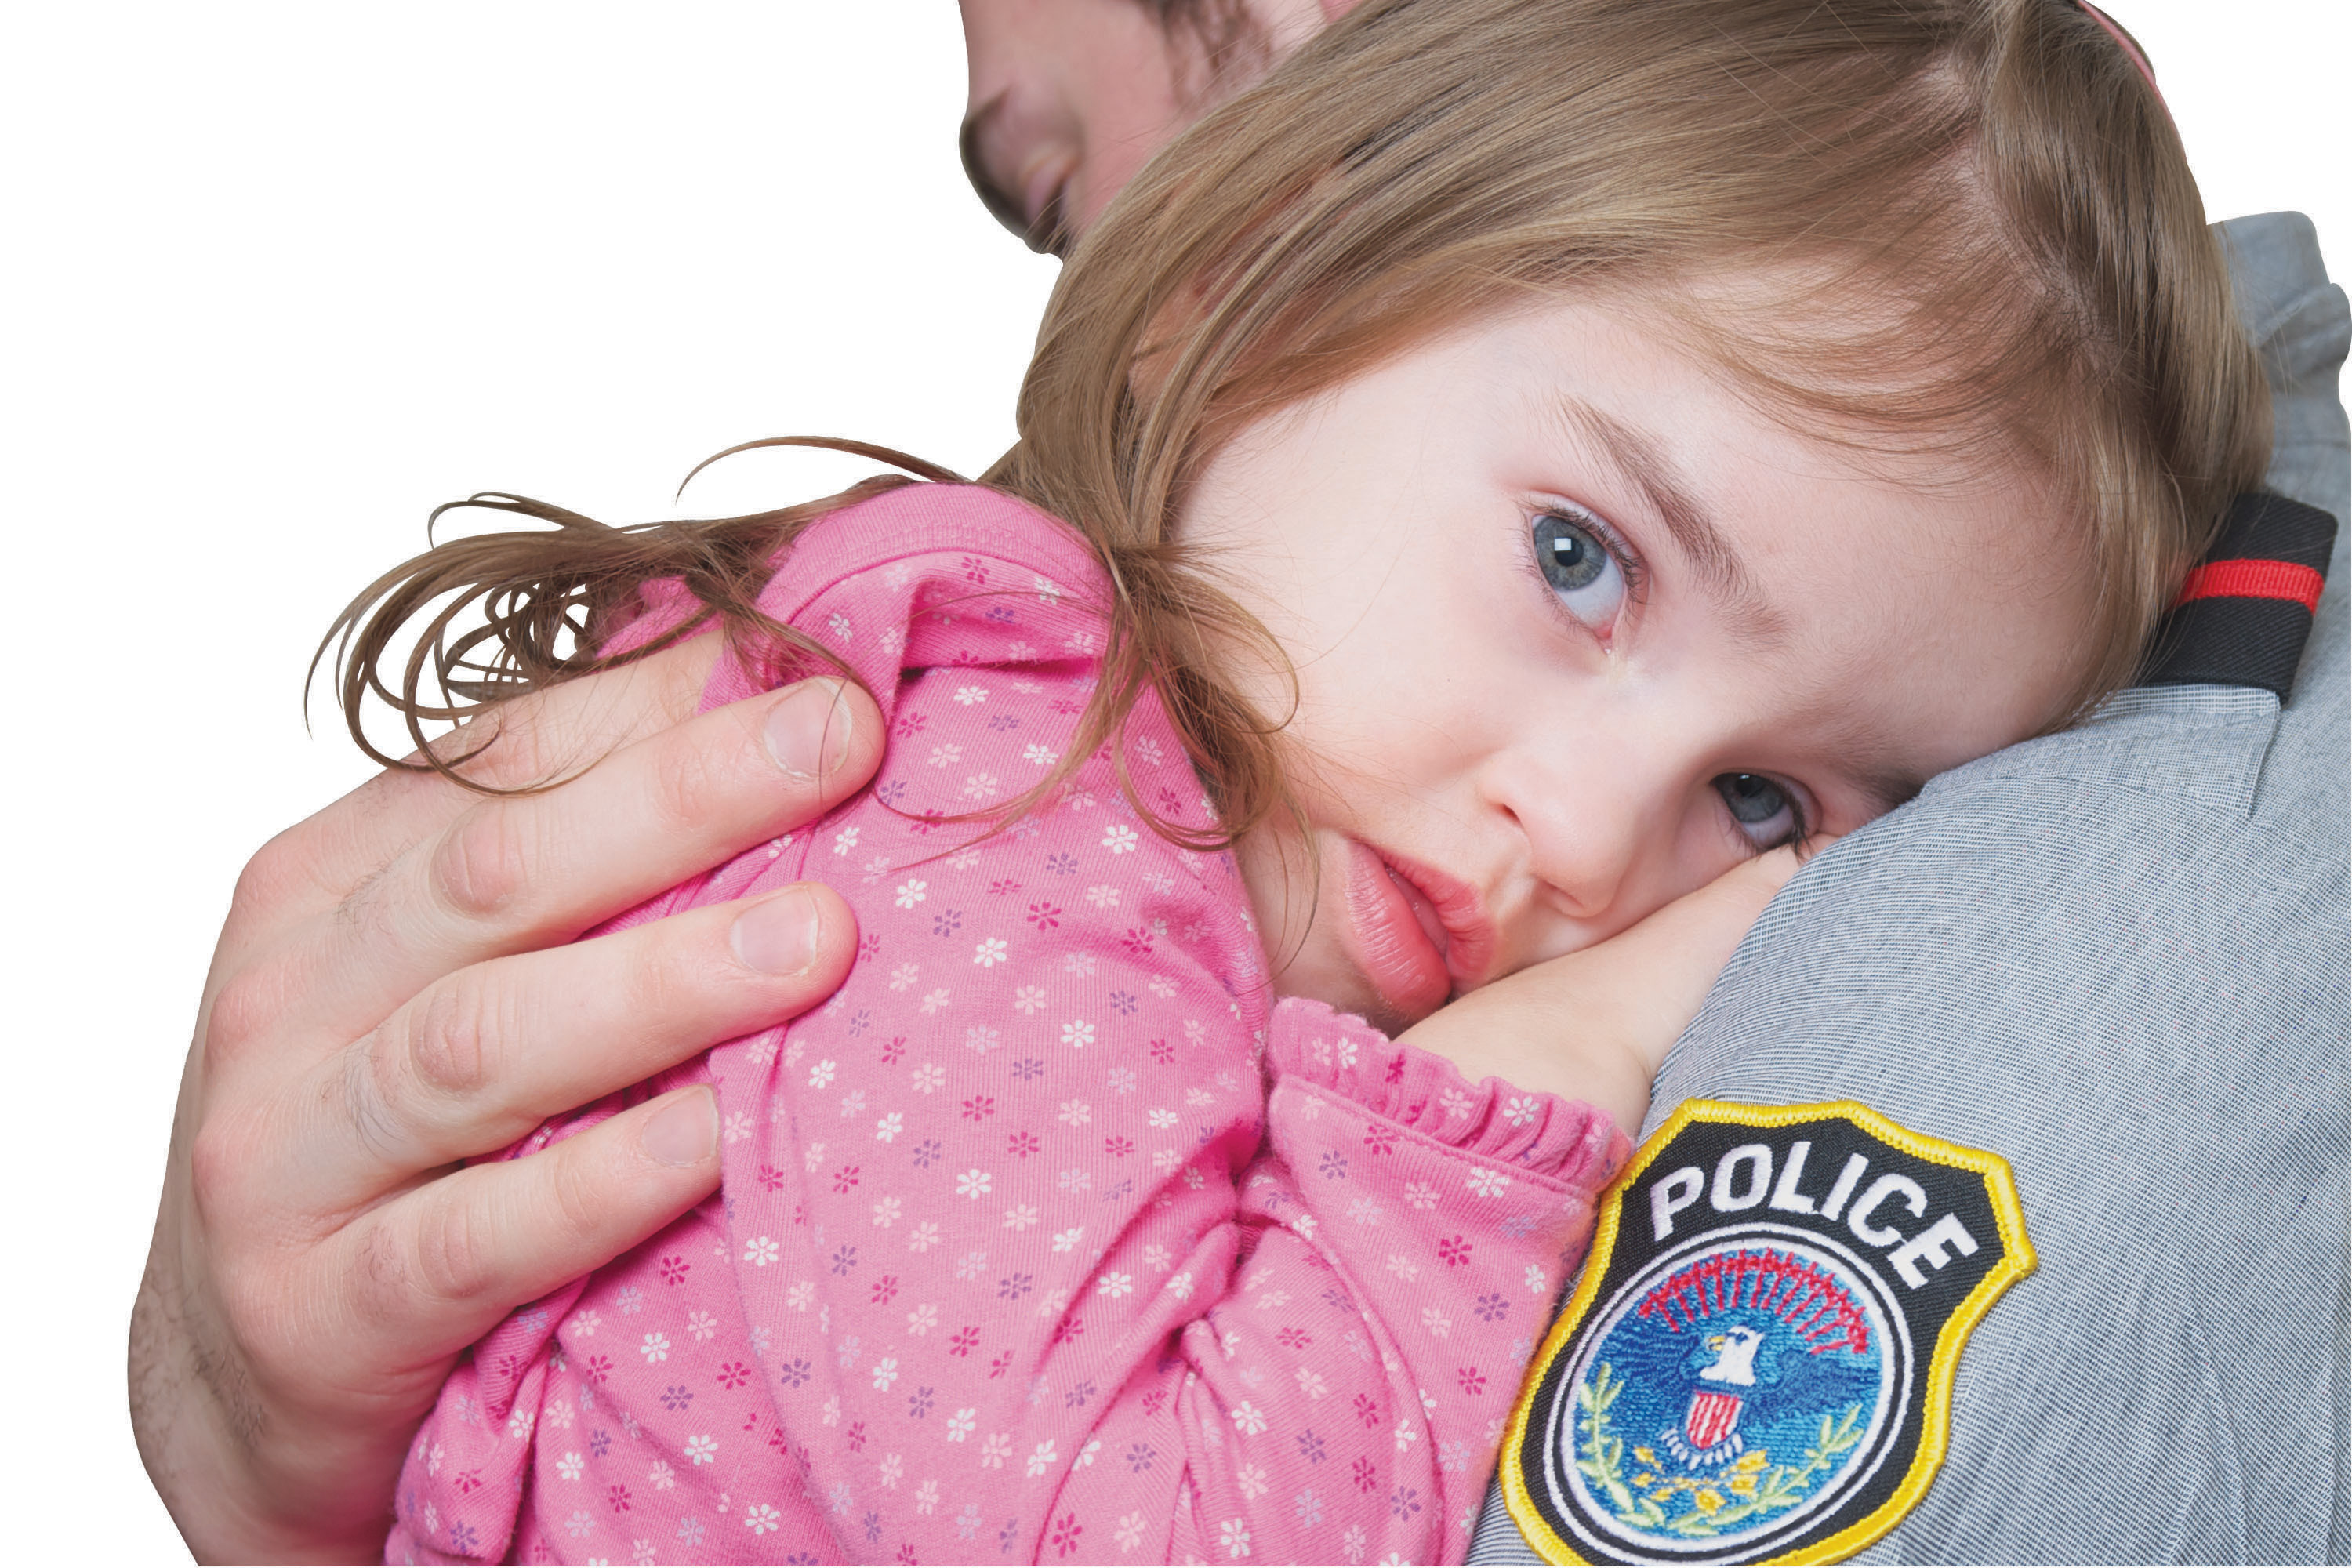 This is a photo of a little girl in the arms of a police officer.